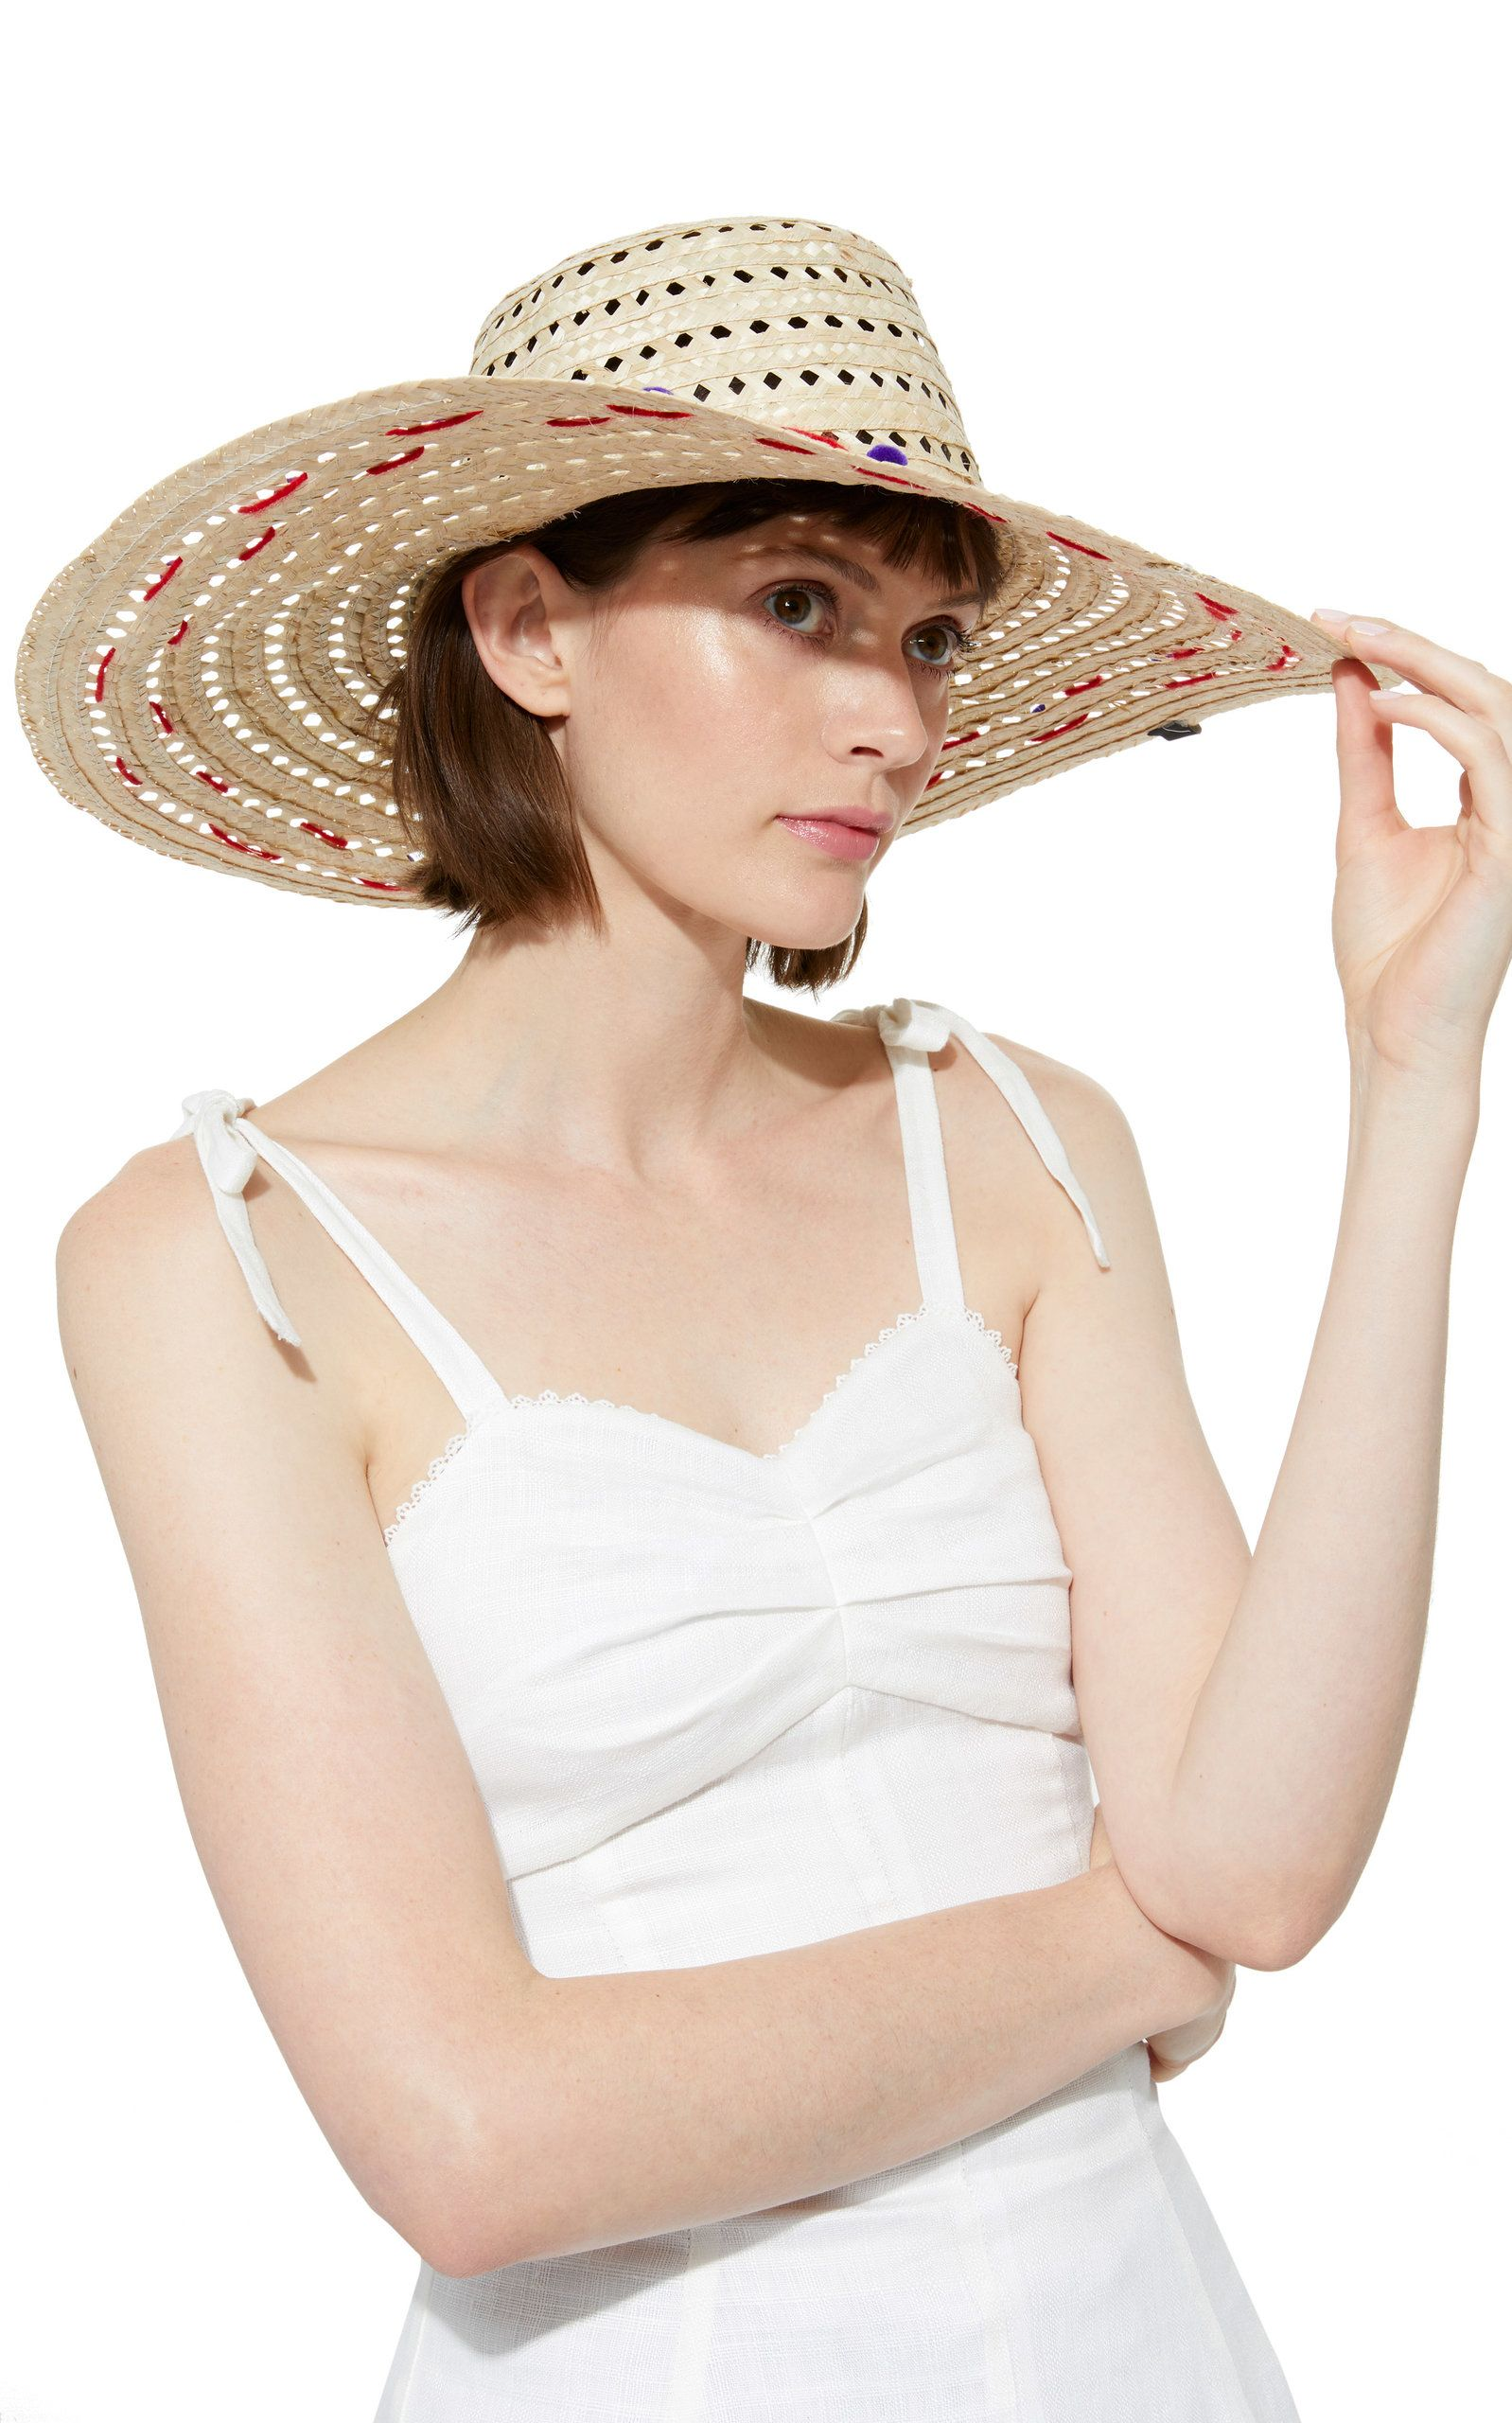 deb8def0076c3 Leila Hat in 2019   Products   Hats, Fashion, Panama hat